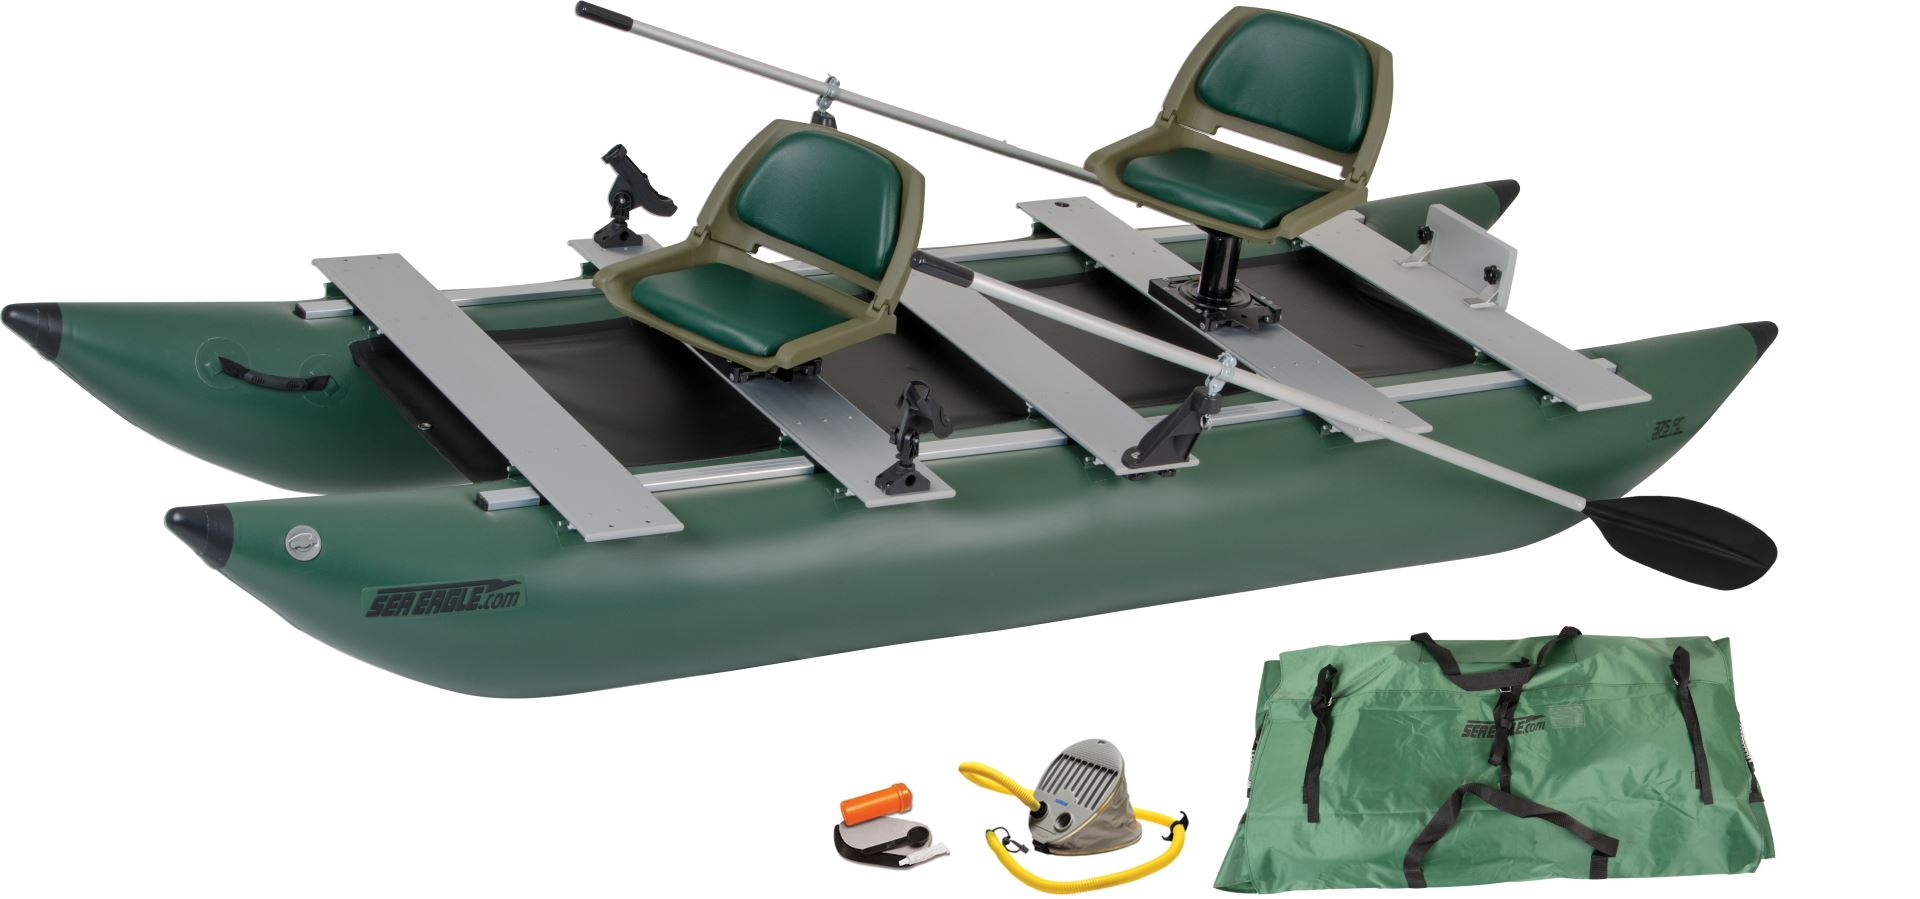 Sea eagle 375fc 2 person inflatable fishing boats package for 2 man fishing boat